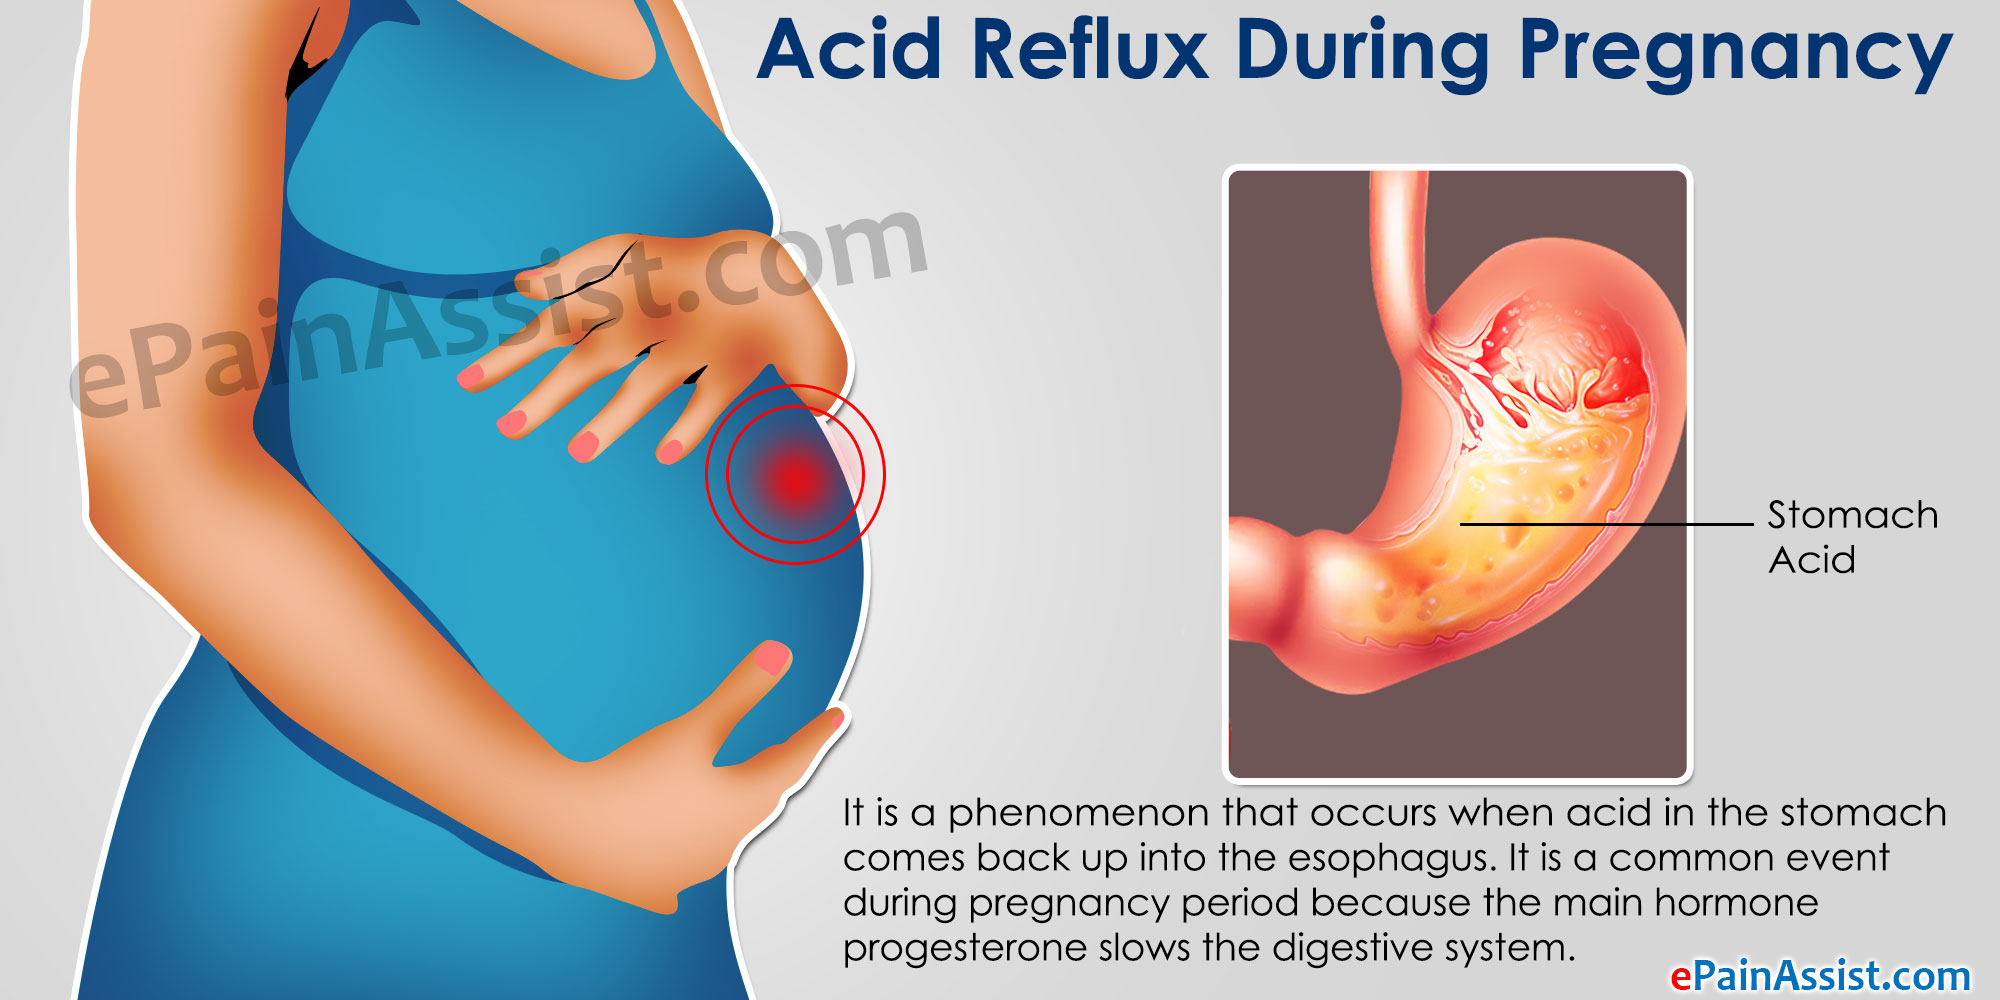 acid reflux during pregnancy: home remedies and lifestyle changes